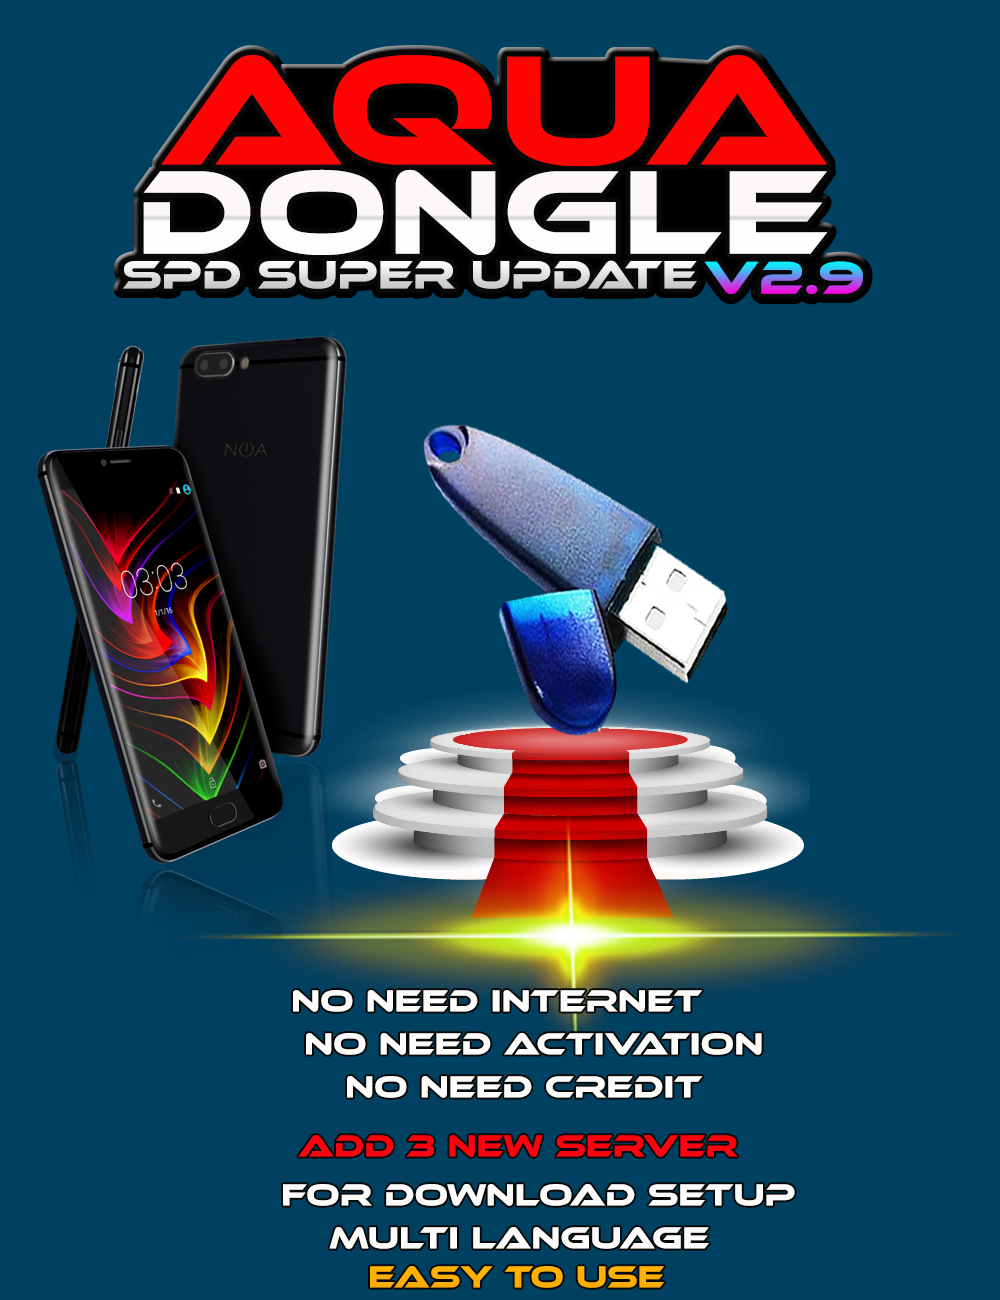 AQUA Dongle All Module V2.9 [SPD Module Hot New Features] Update 28-07-2020